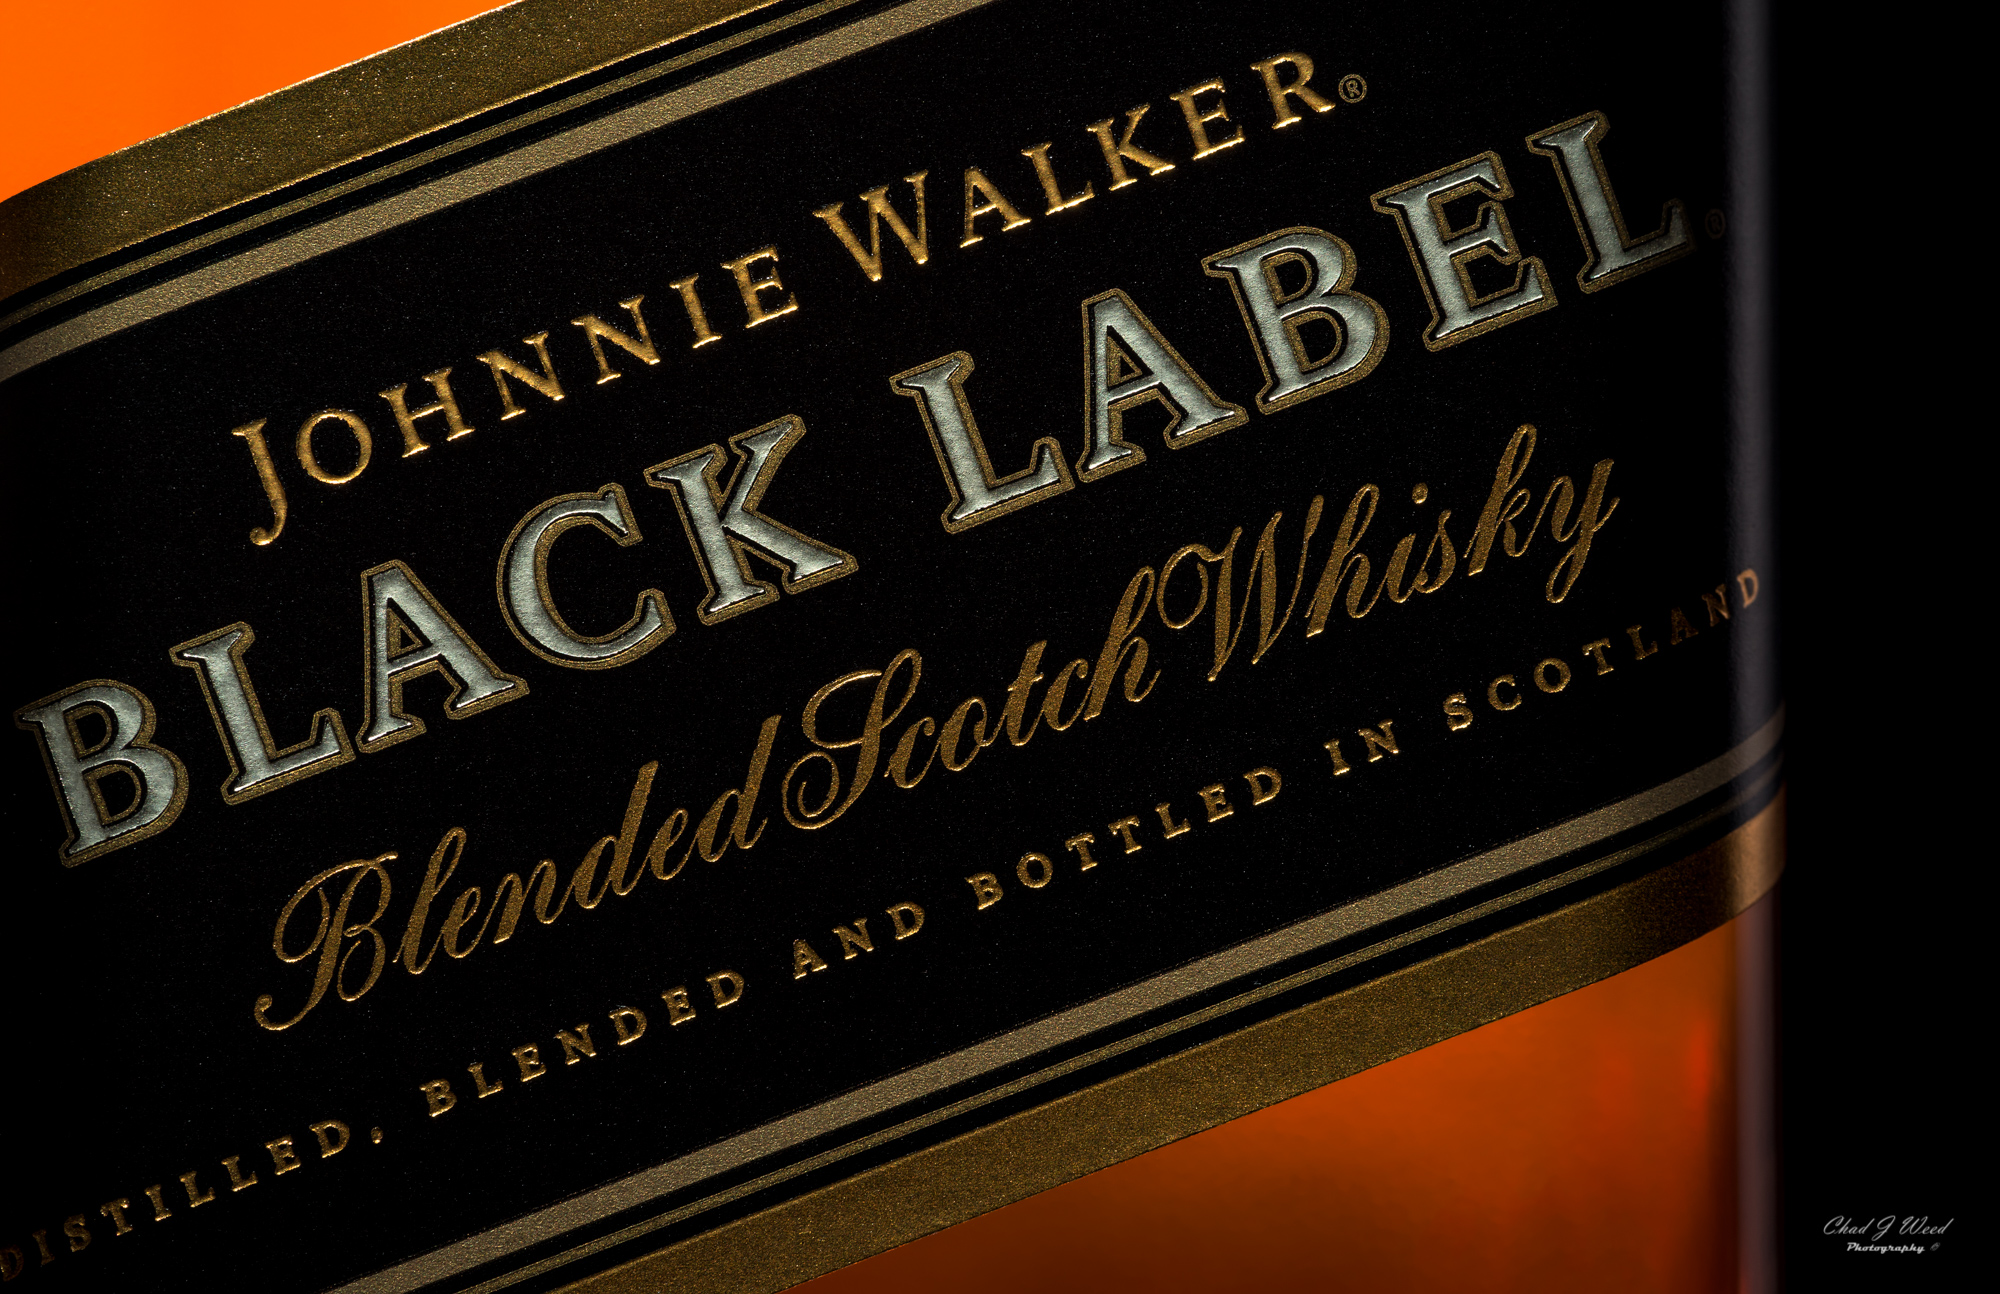 Johnnie Walker Black Label Bottle by Arizona Commercial Beverage Photographer Chad J Weed